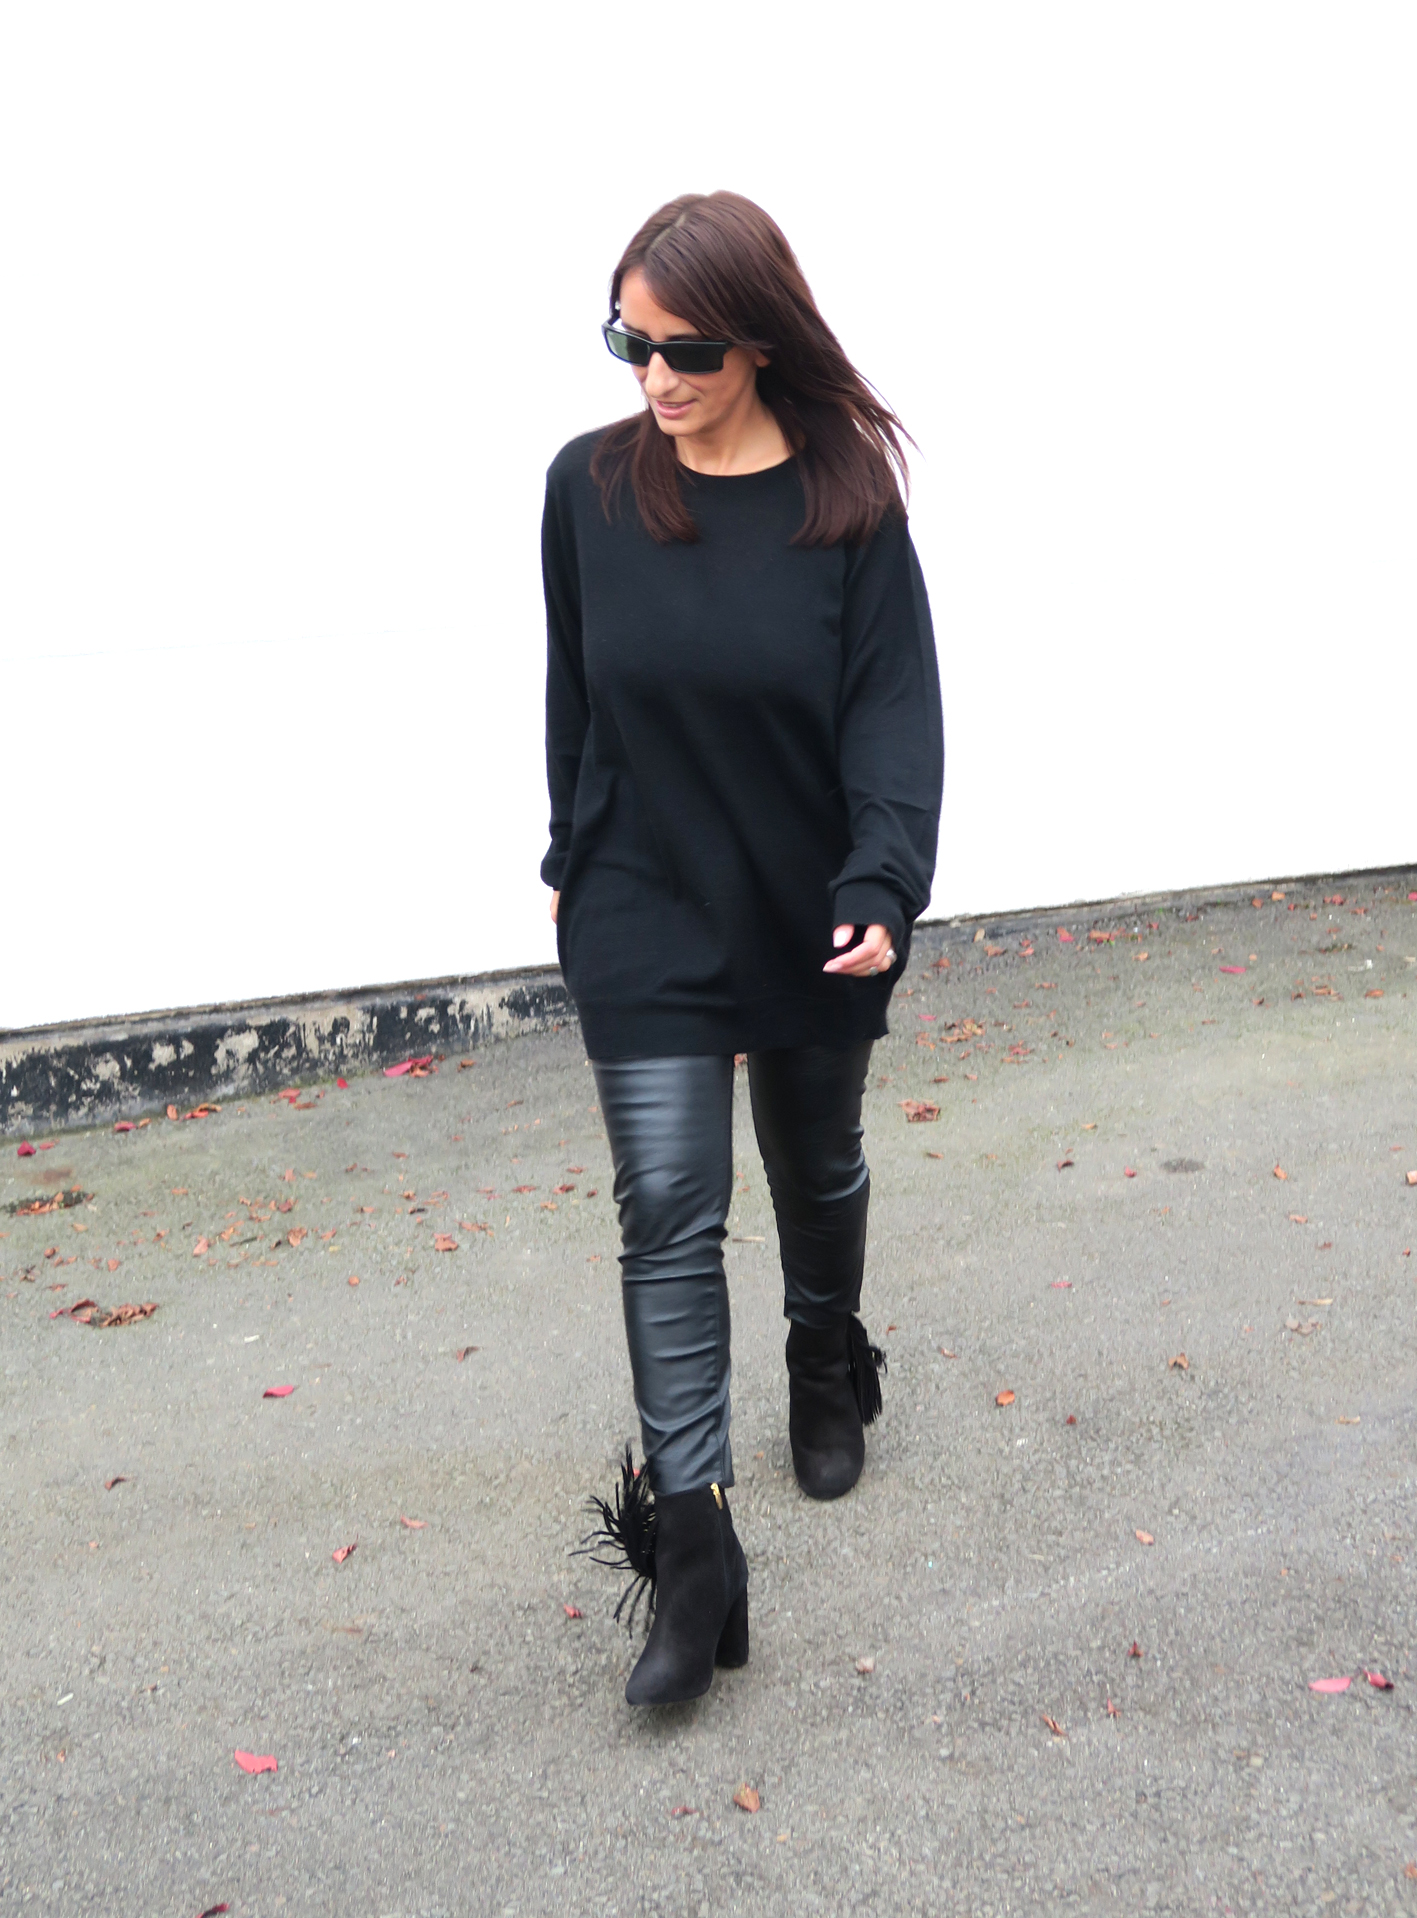 brands4friends-buffalo-boots-fringe-fashionblogger-modeblogger-fashion-style-trend-black-outfit-2